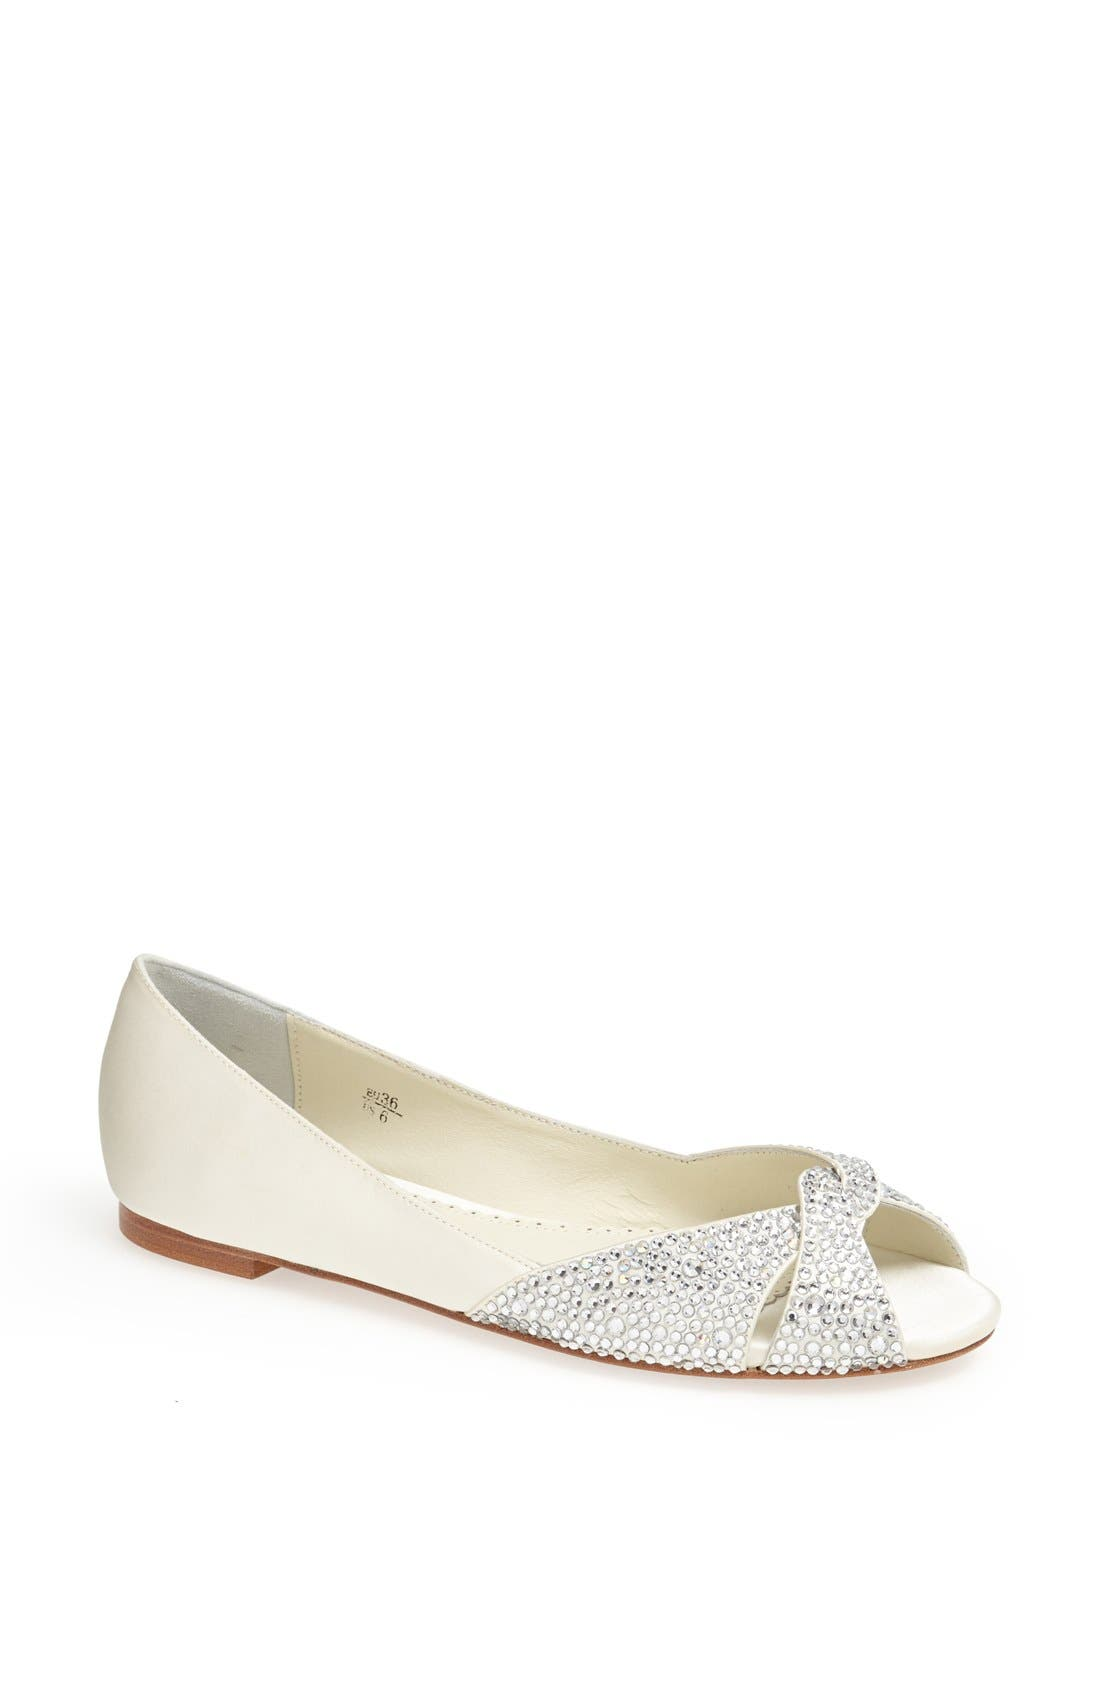 'Andie' Crystal Embellished Peep Toe Flat,                             Main thumbnail 1, color,                             Ivory